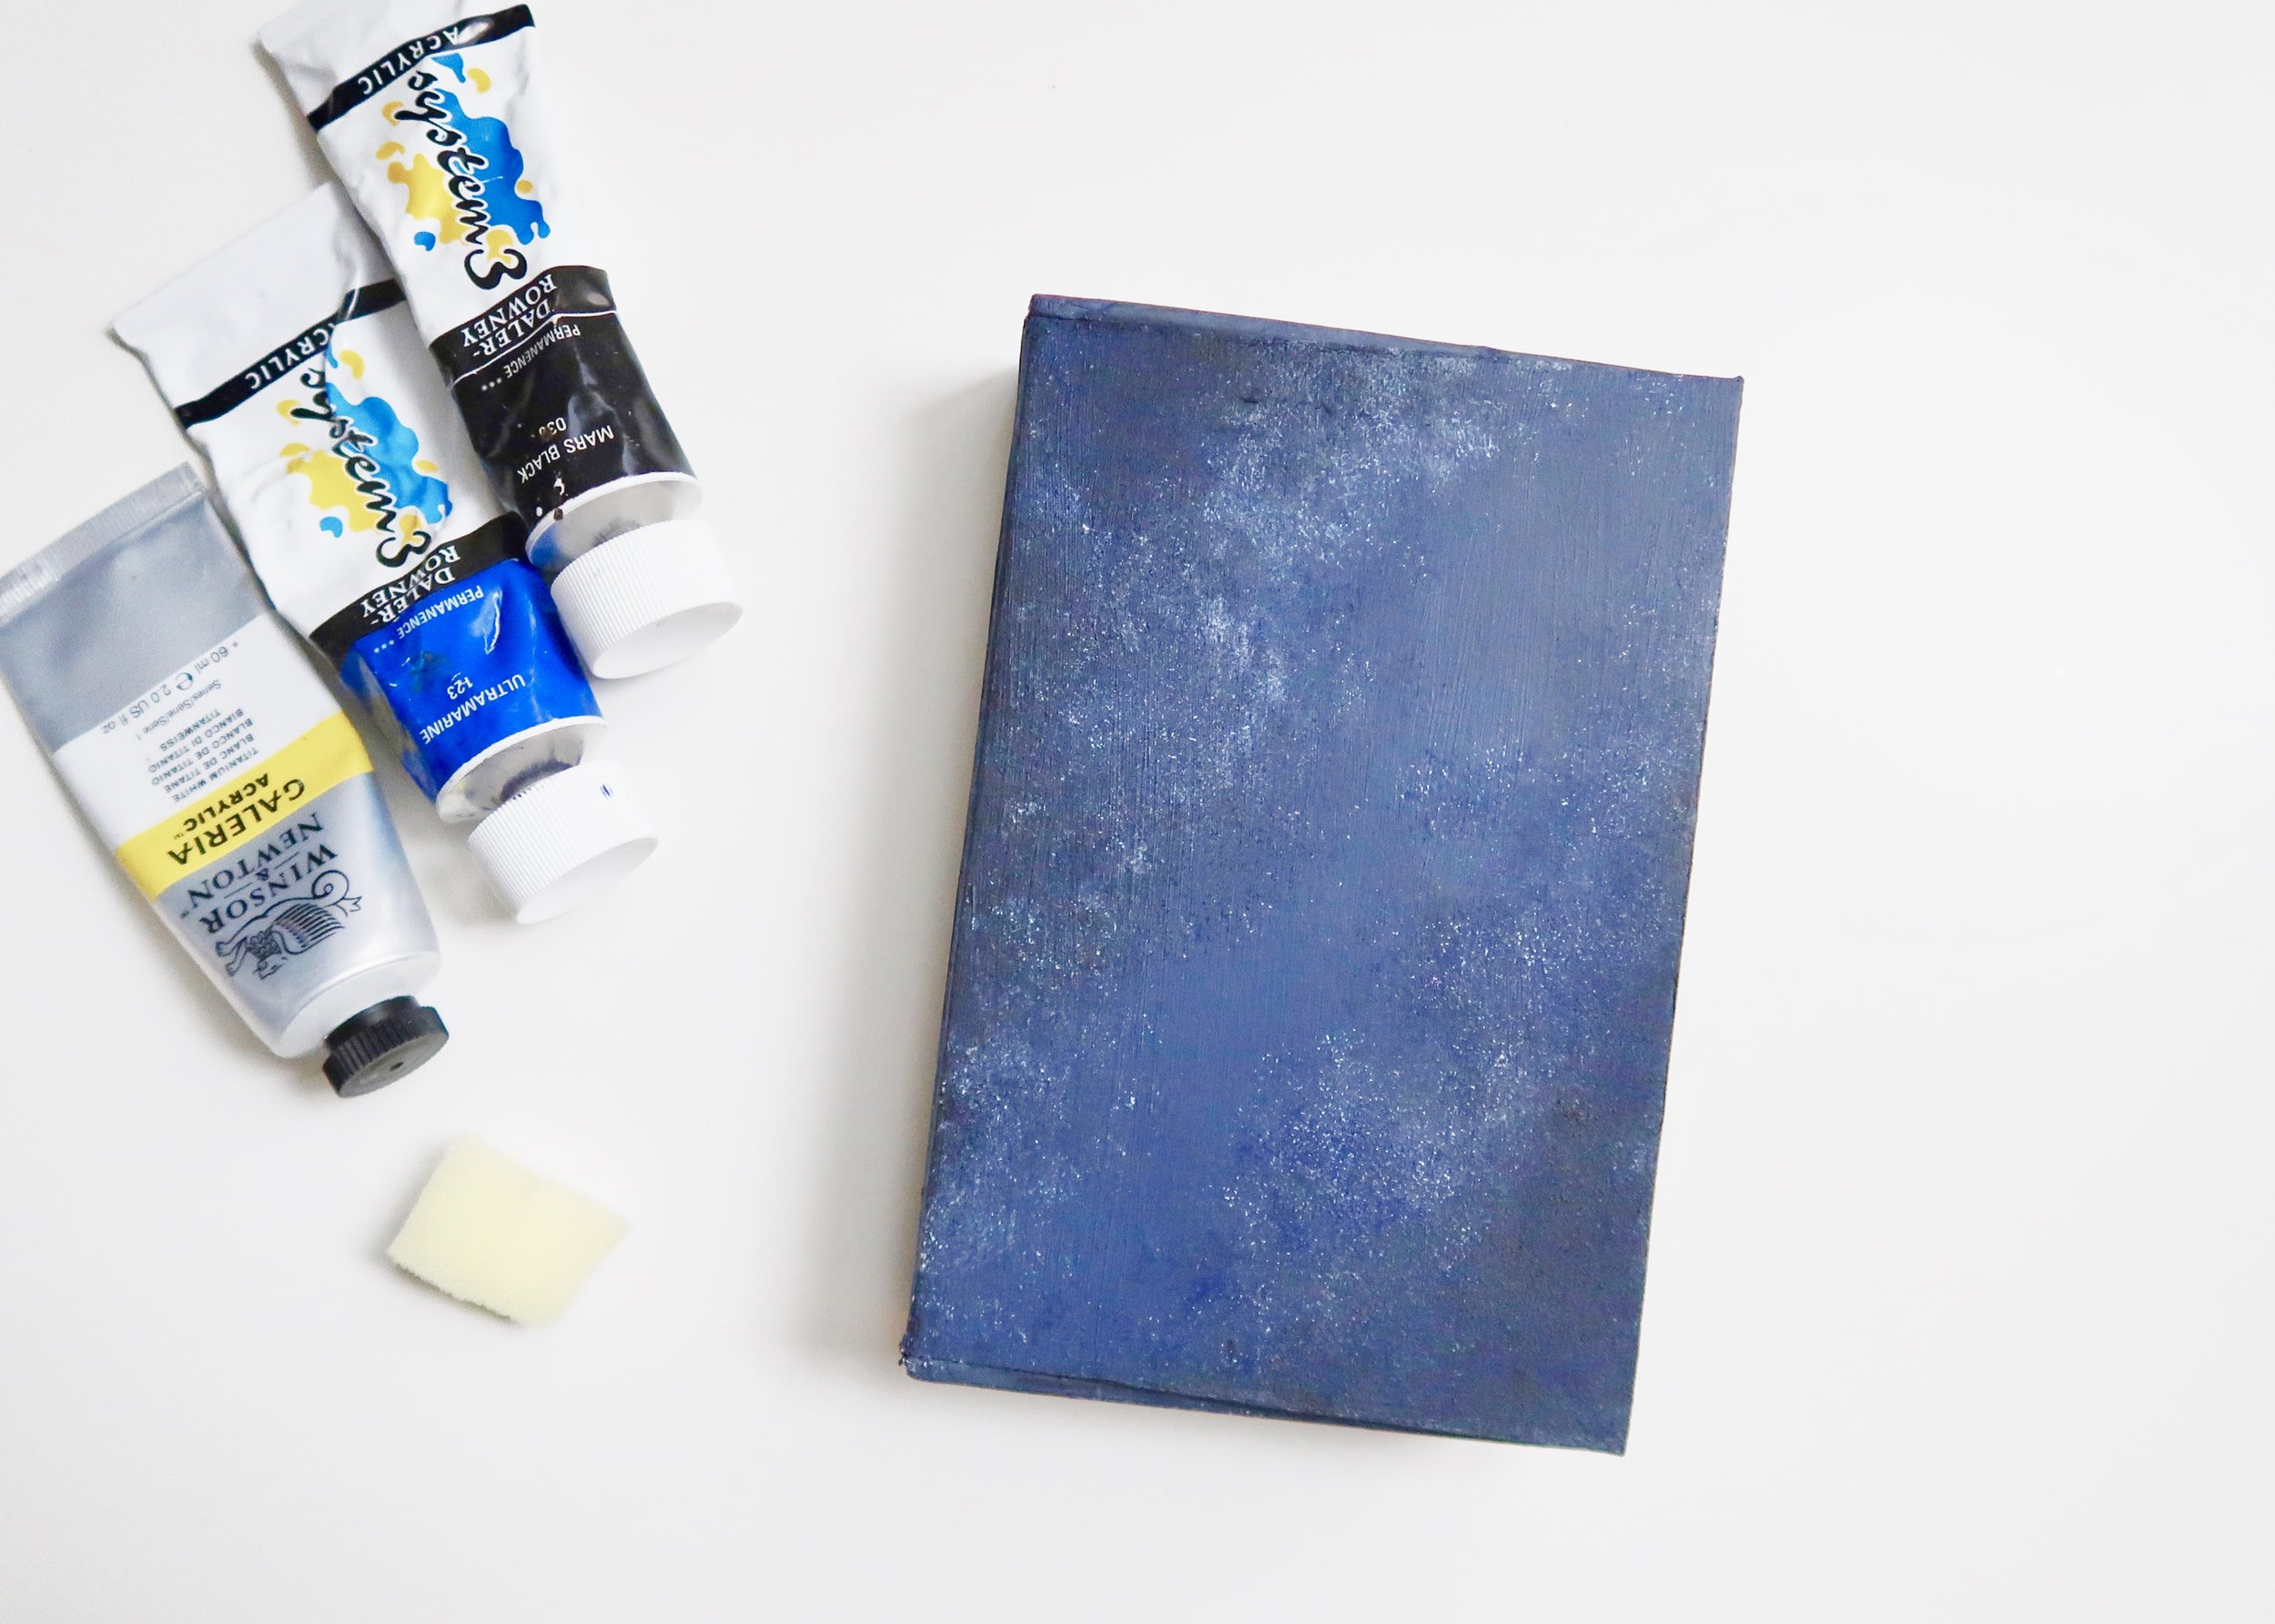 6. - To create the starry sky, use a sponge and a combination of white,  lighter blue and black acrylic paint. I found it helpful to start with the darker colours, and to build these up in the top left and bottom right hand corners, leaving a gap from the top right to the bottom left. Add some white to the same sponge, and carefully add some white at the edges of the darker blue in the corners, to look a bit like clouds. Keep building it up until you're happy. Once you are, leave it to completely dry.